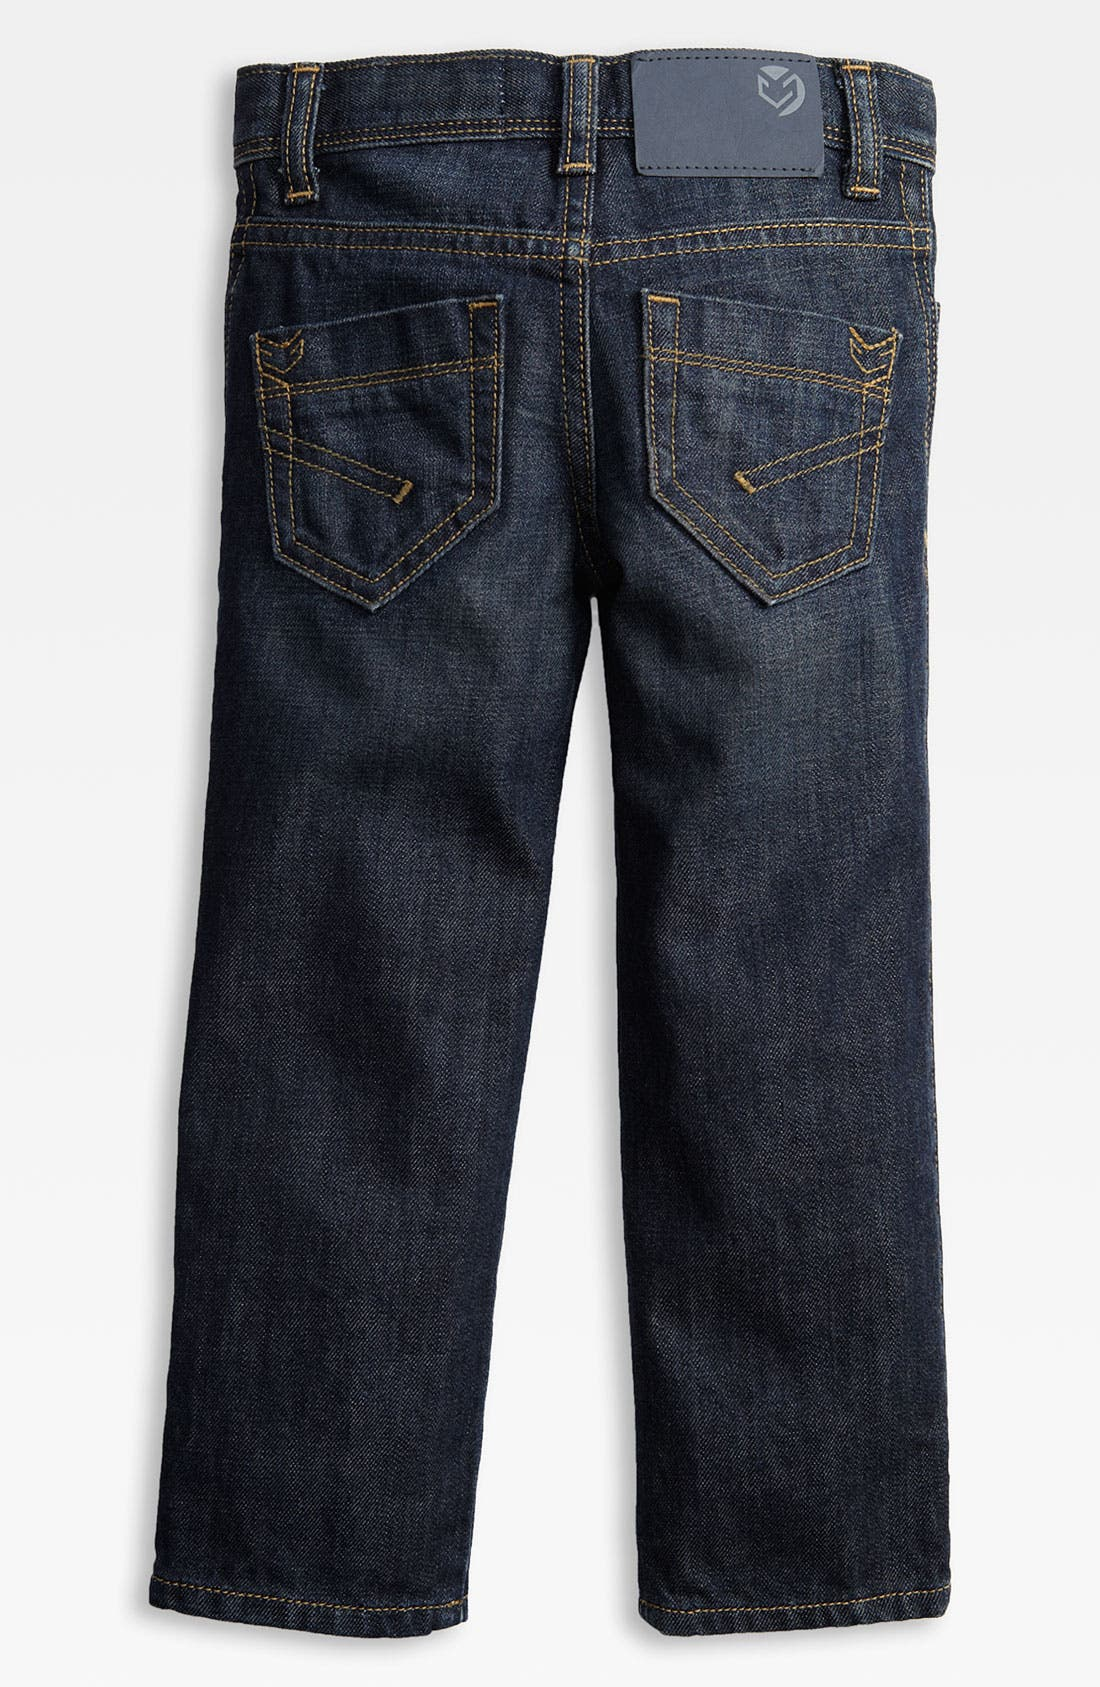 Main Image - Pure Stuff 'Sneaker' Jeans (Toddler)